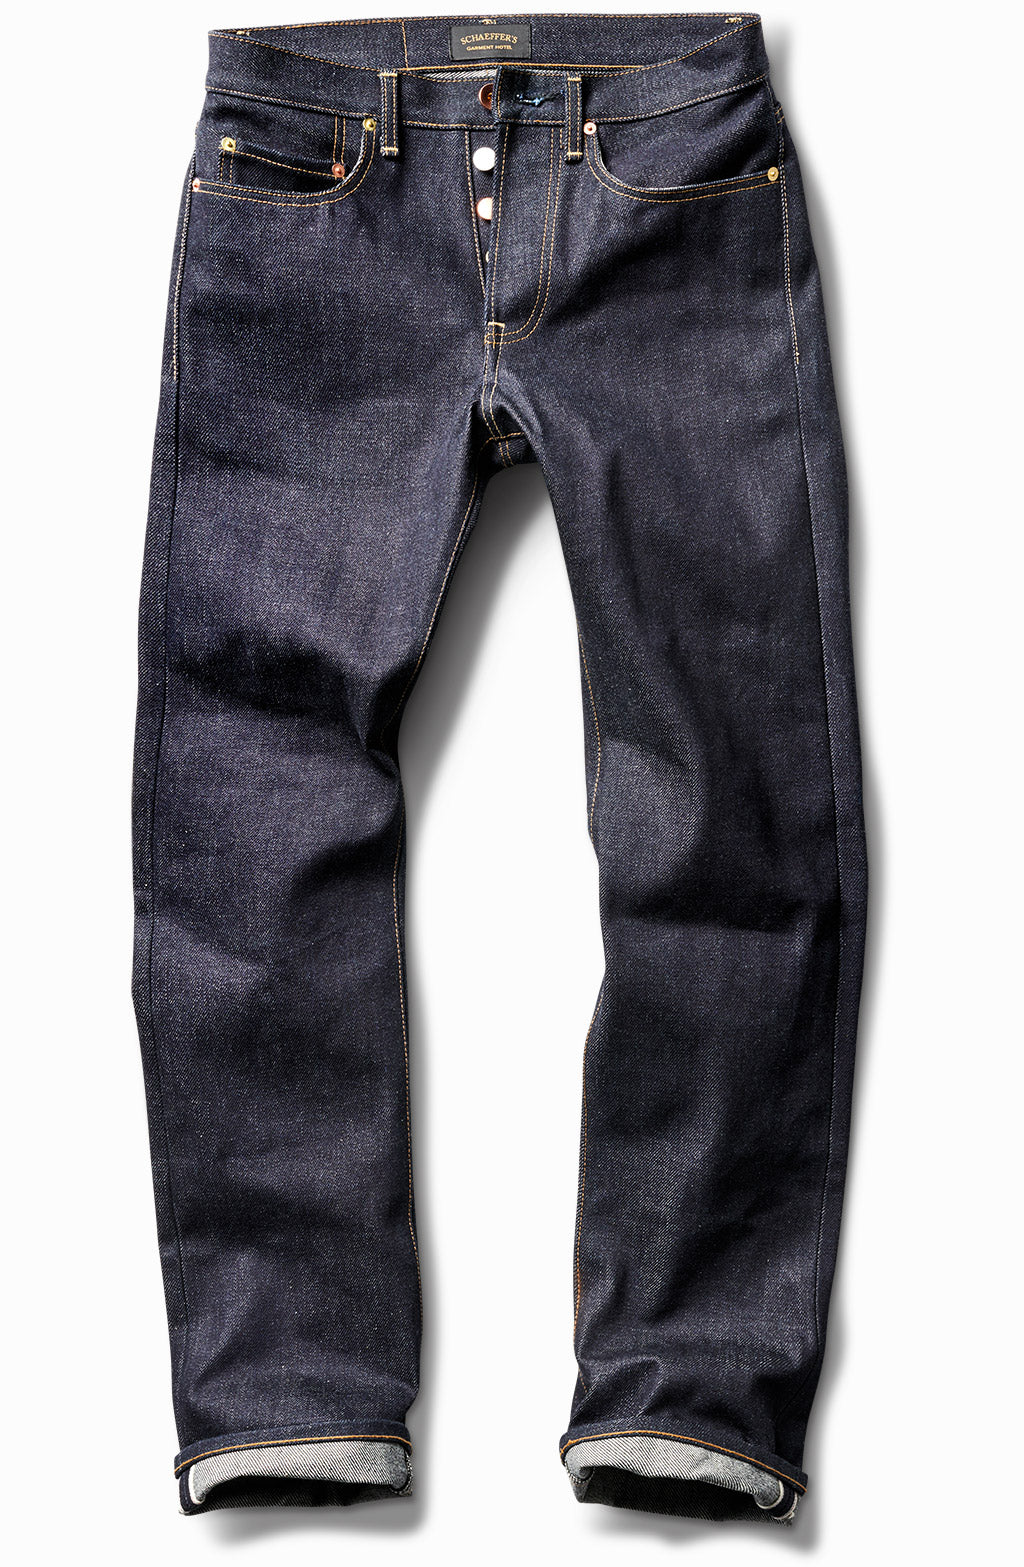 25oz Rope Indigo - Tall Slim